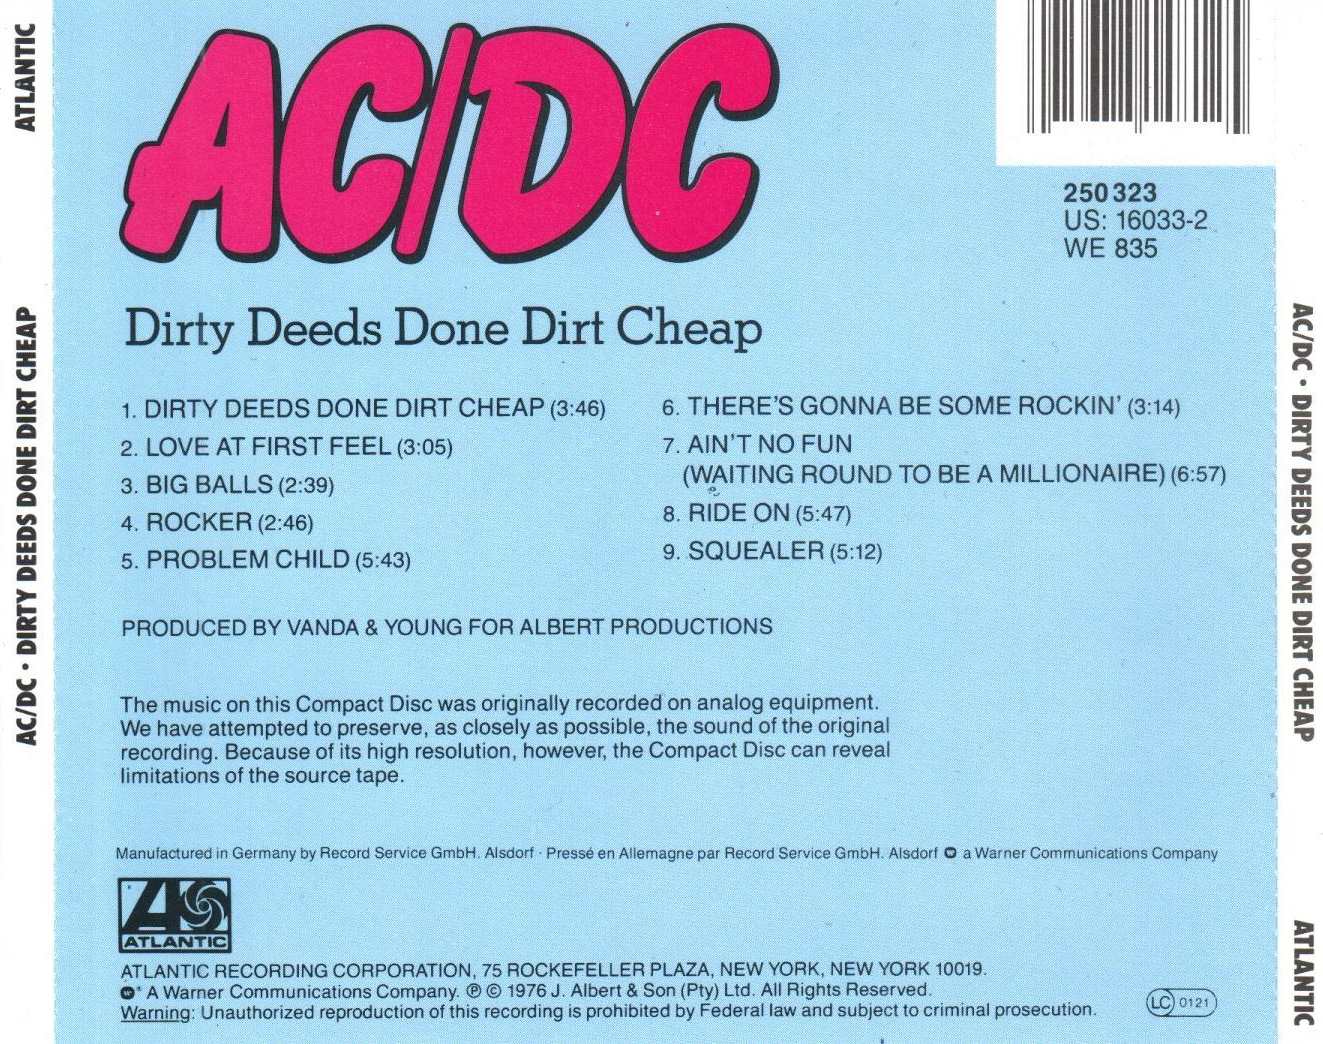 Musicotherapia: AC/DC - Dirty Deeds Done Dirt Cheap (1976)